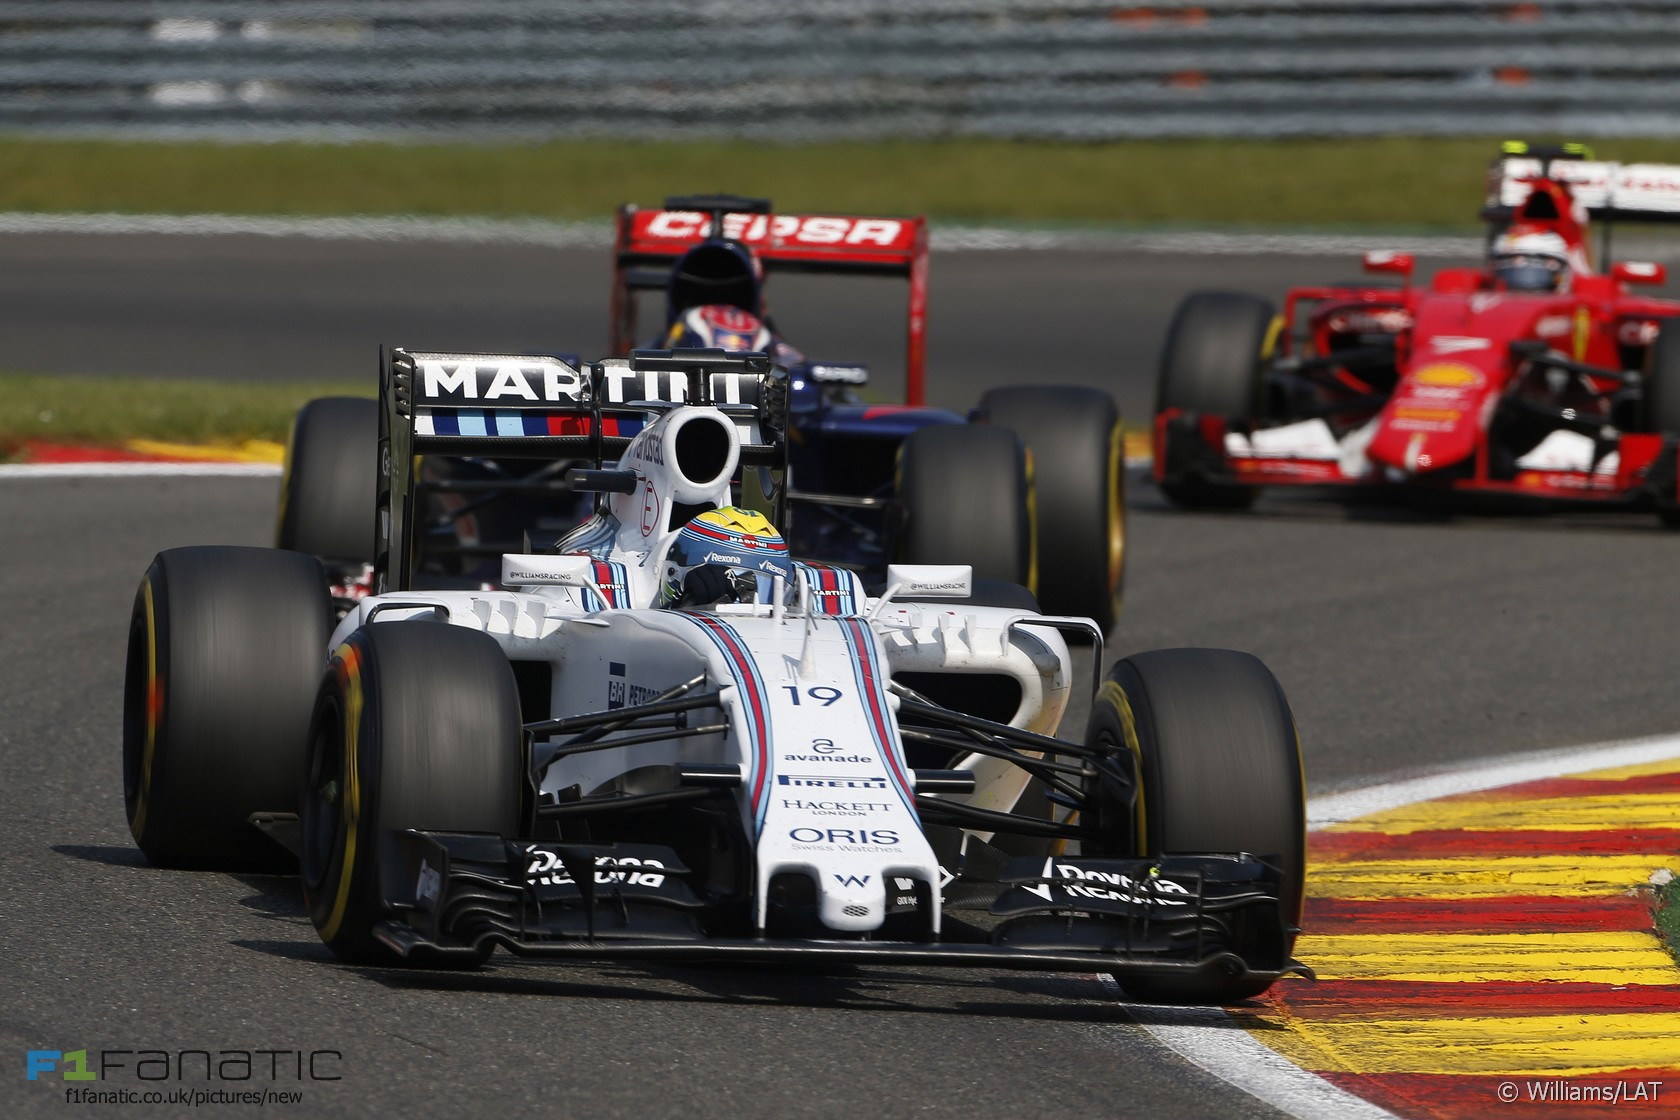 Become an f1 fanatic supporter and go ad-free